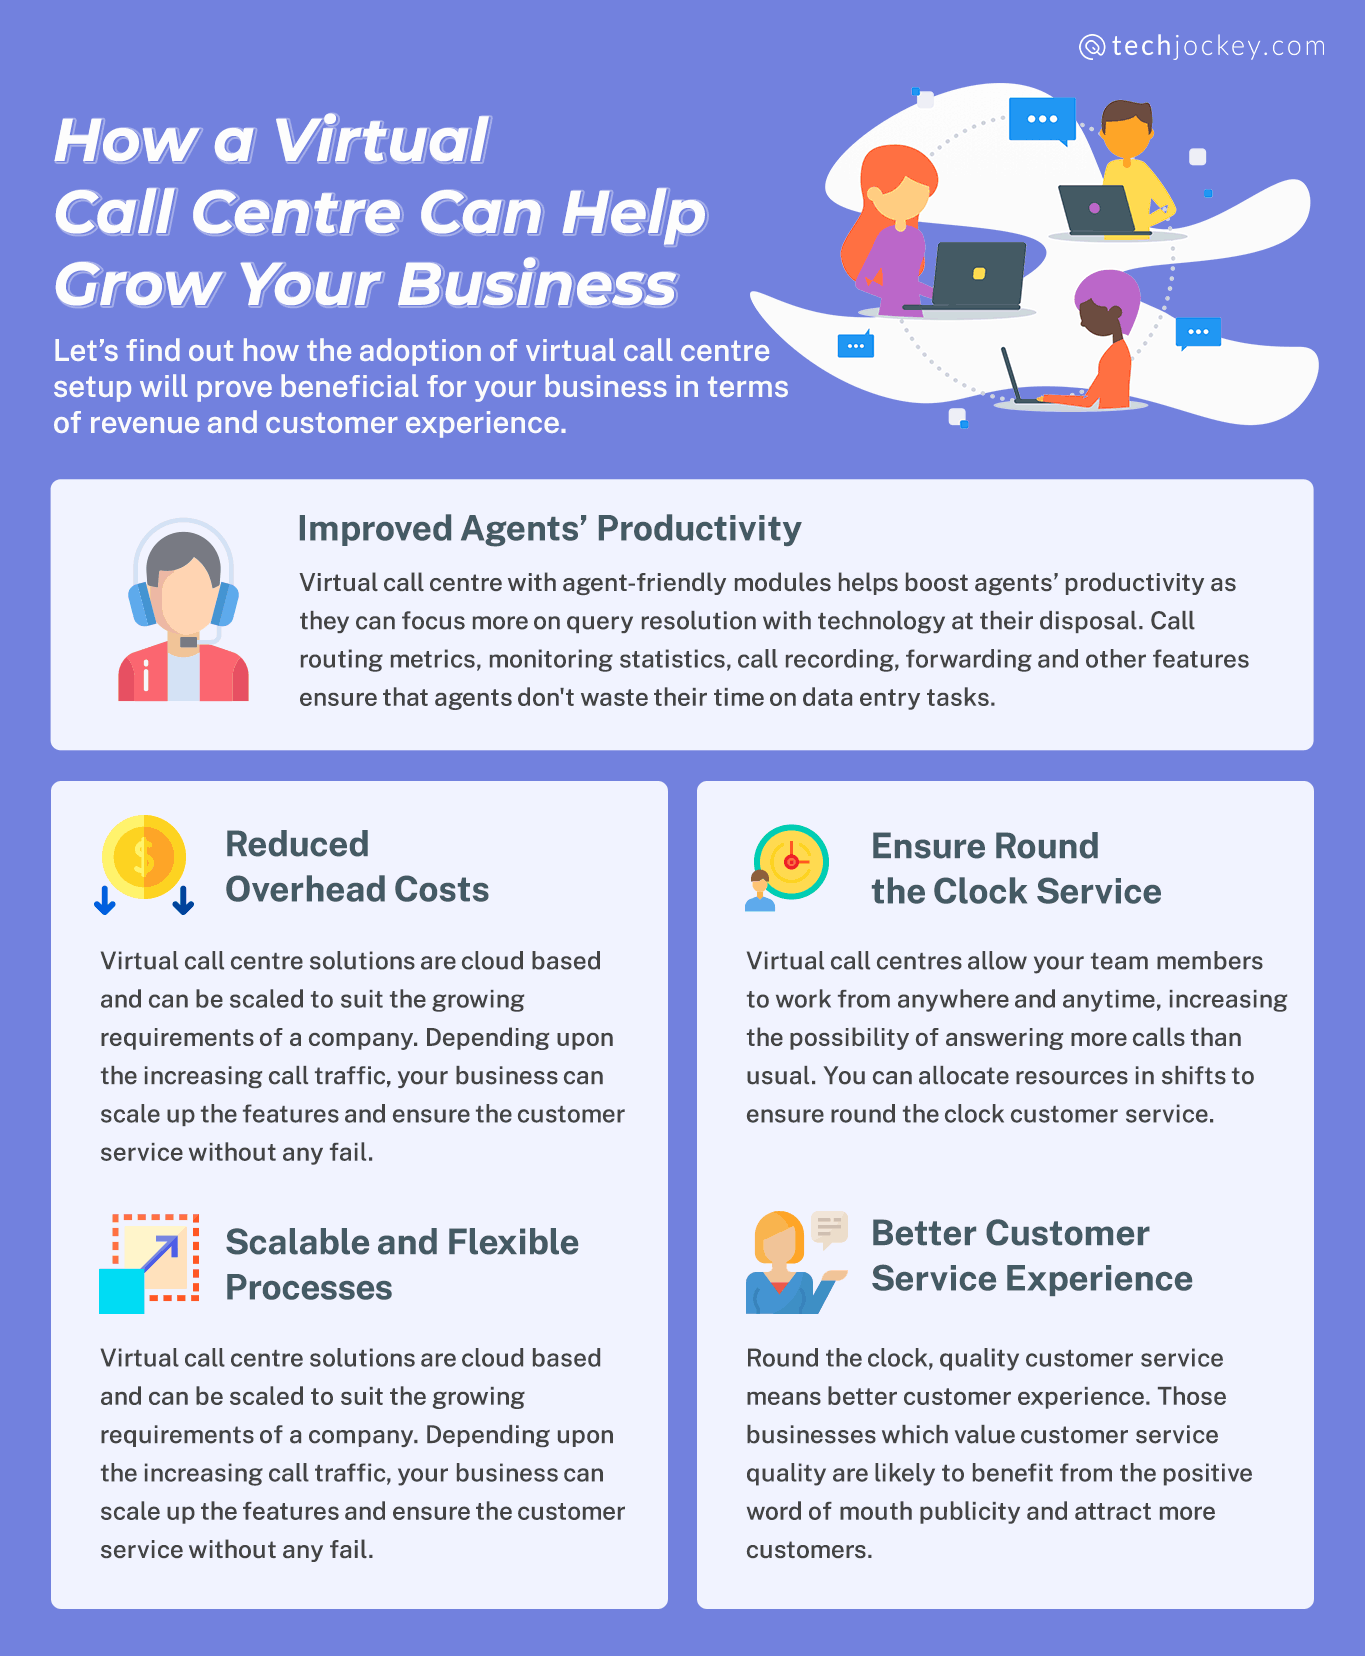 How a Virtual Call Centre Can Help Grow Your Business